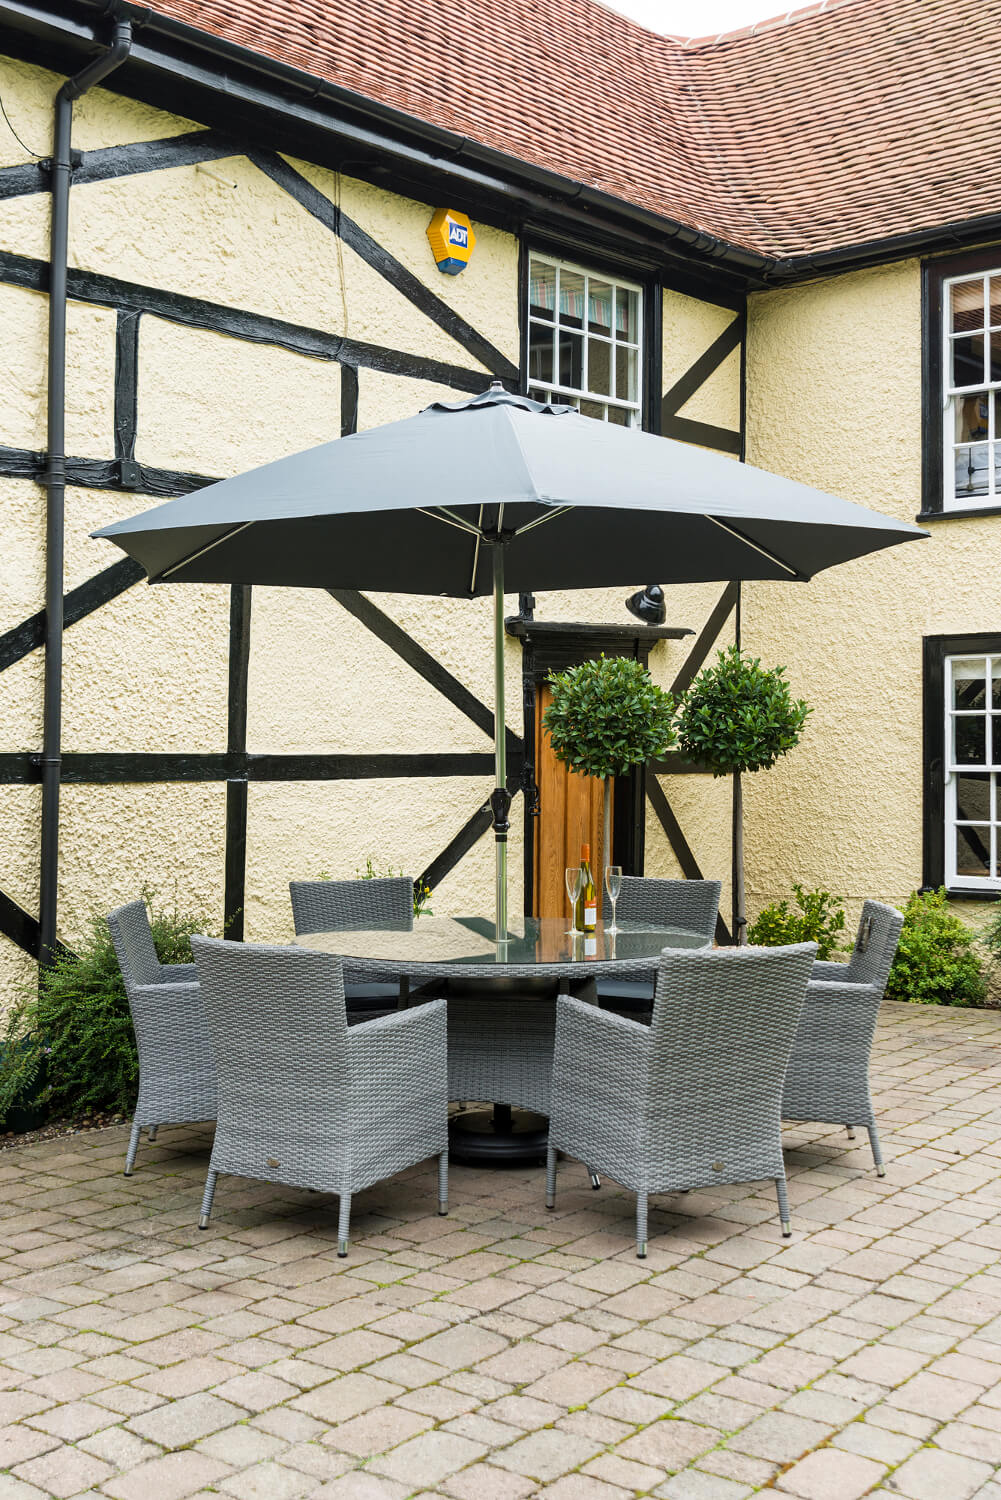 Chatsworth Sandringham 6 Seater Garden Dining Set 163 749